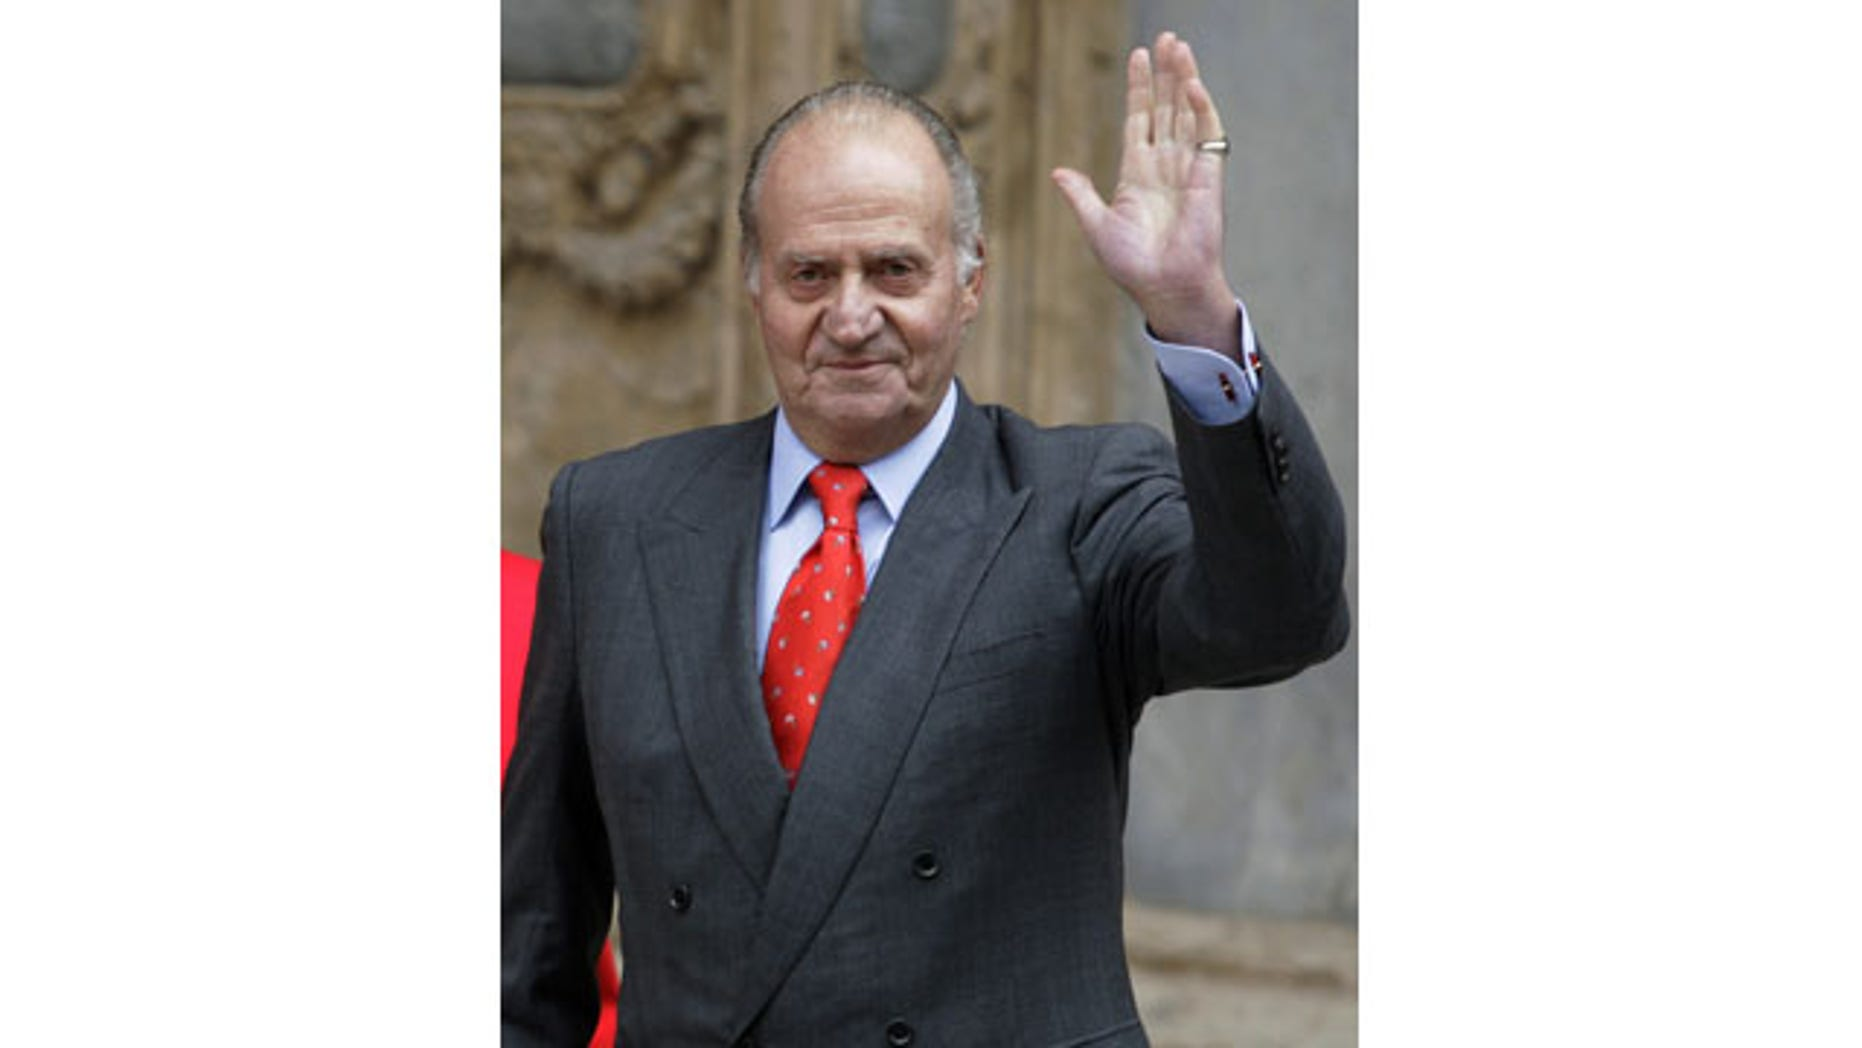 FILE - In this file photo from April 12, 2009, Spanish King Juan Carlos, waves after attending an Easter Mass at the Cathedral of Palma de Mallorca, Spain. (AP)